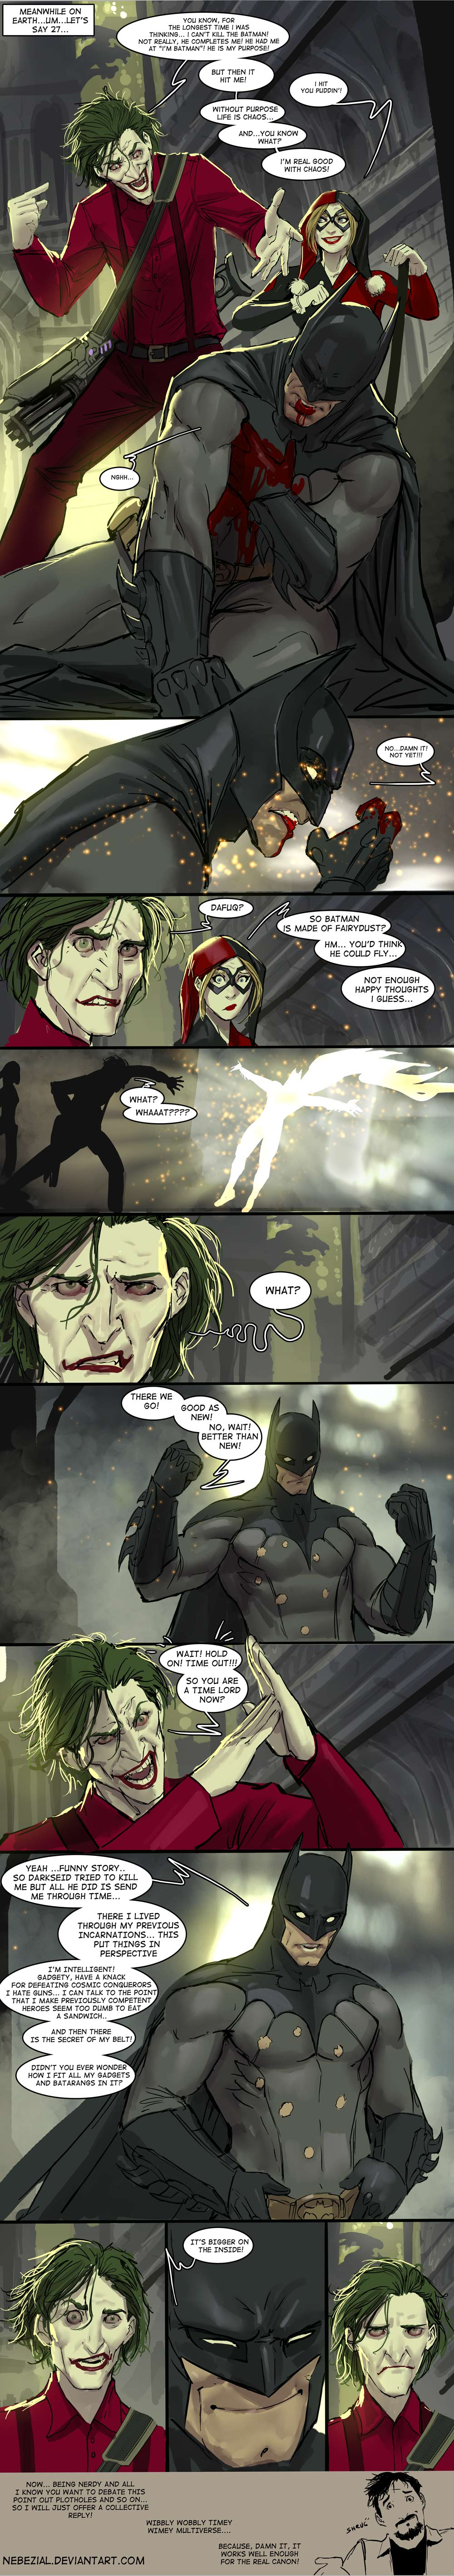 it_s_simple__we_kill_the_doctor___no_wait__batman__by_nebezial-d6yi2xh